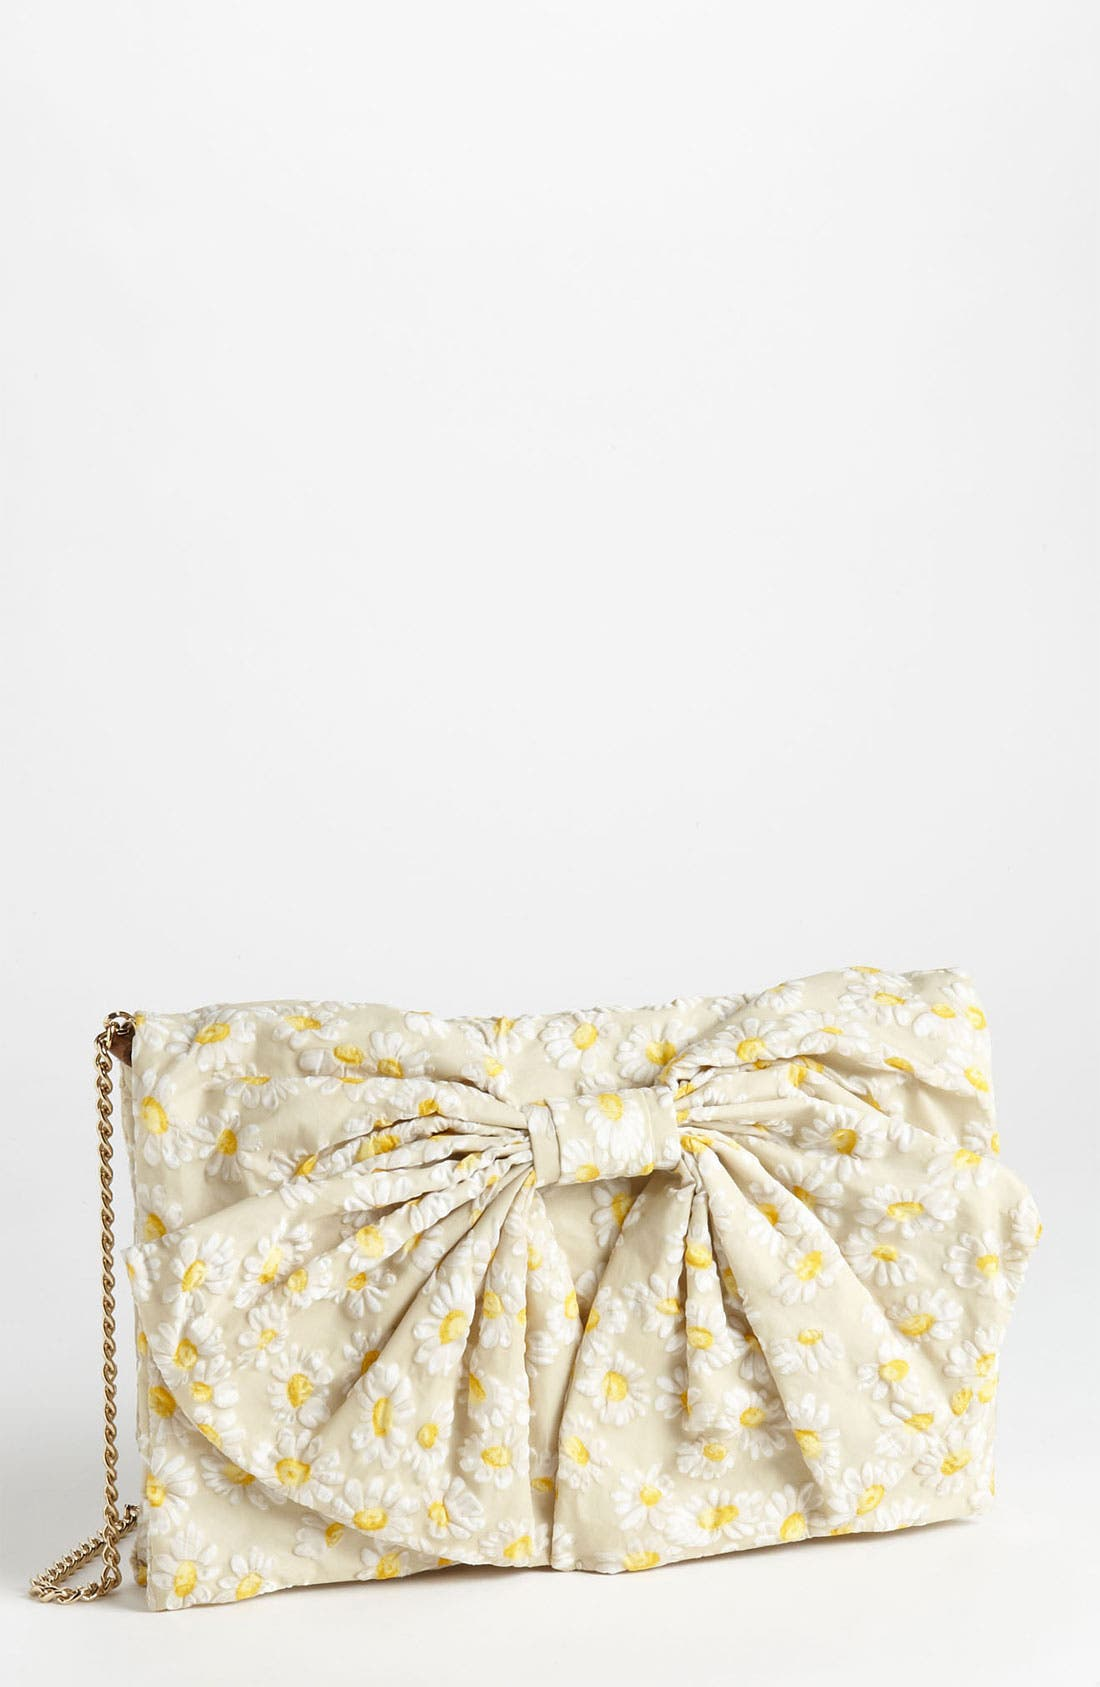 Alternate Image 1 Selected - RED Valentino 'Bow' Crossbody Bag